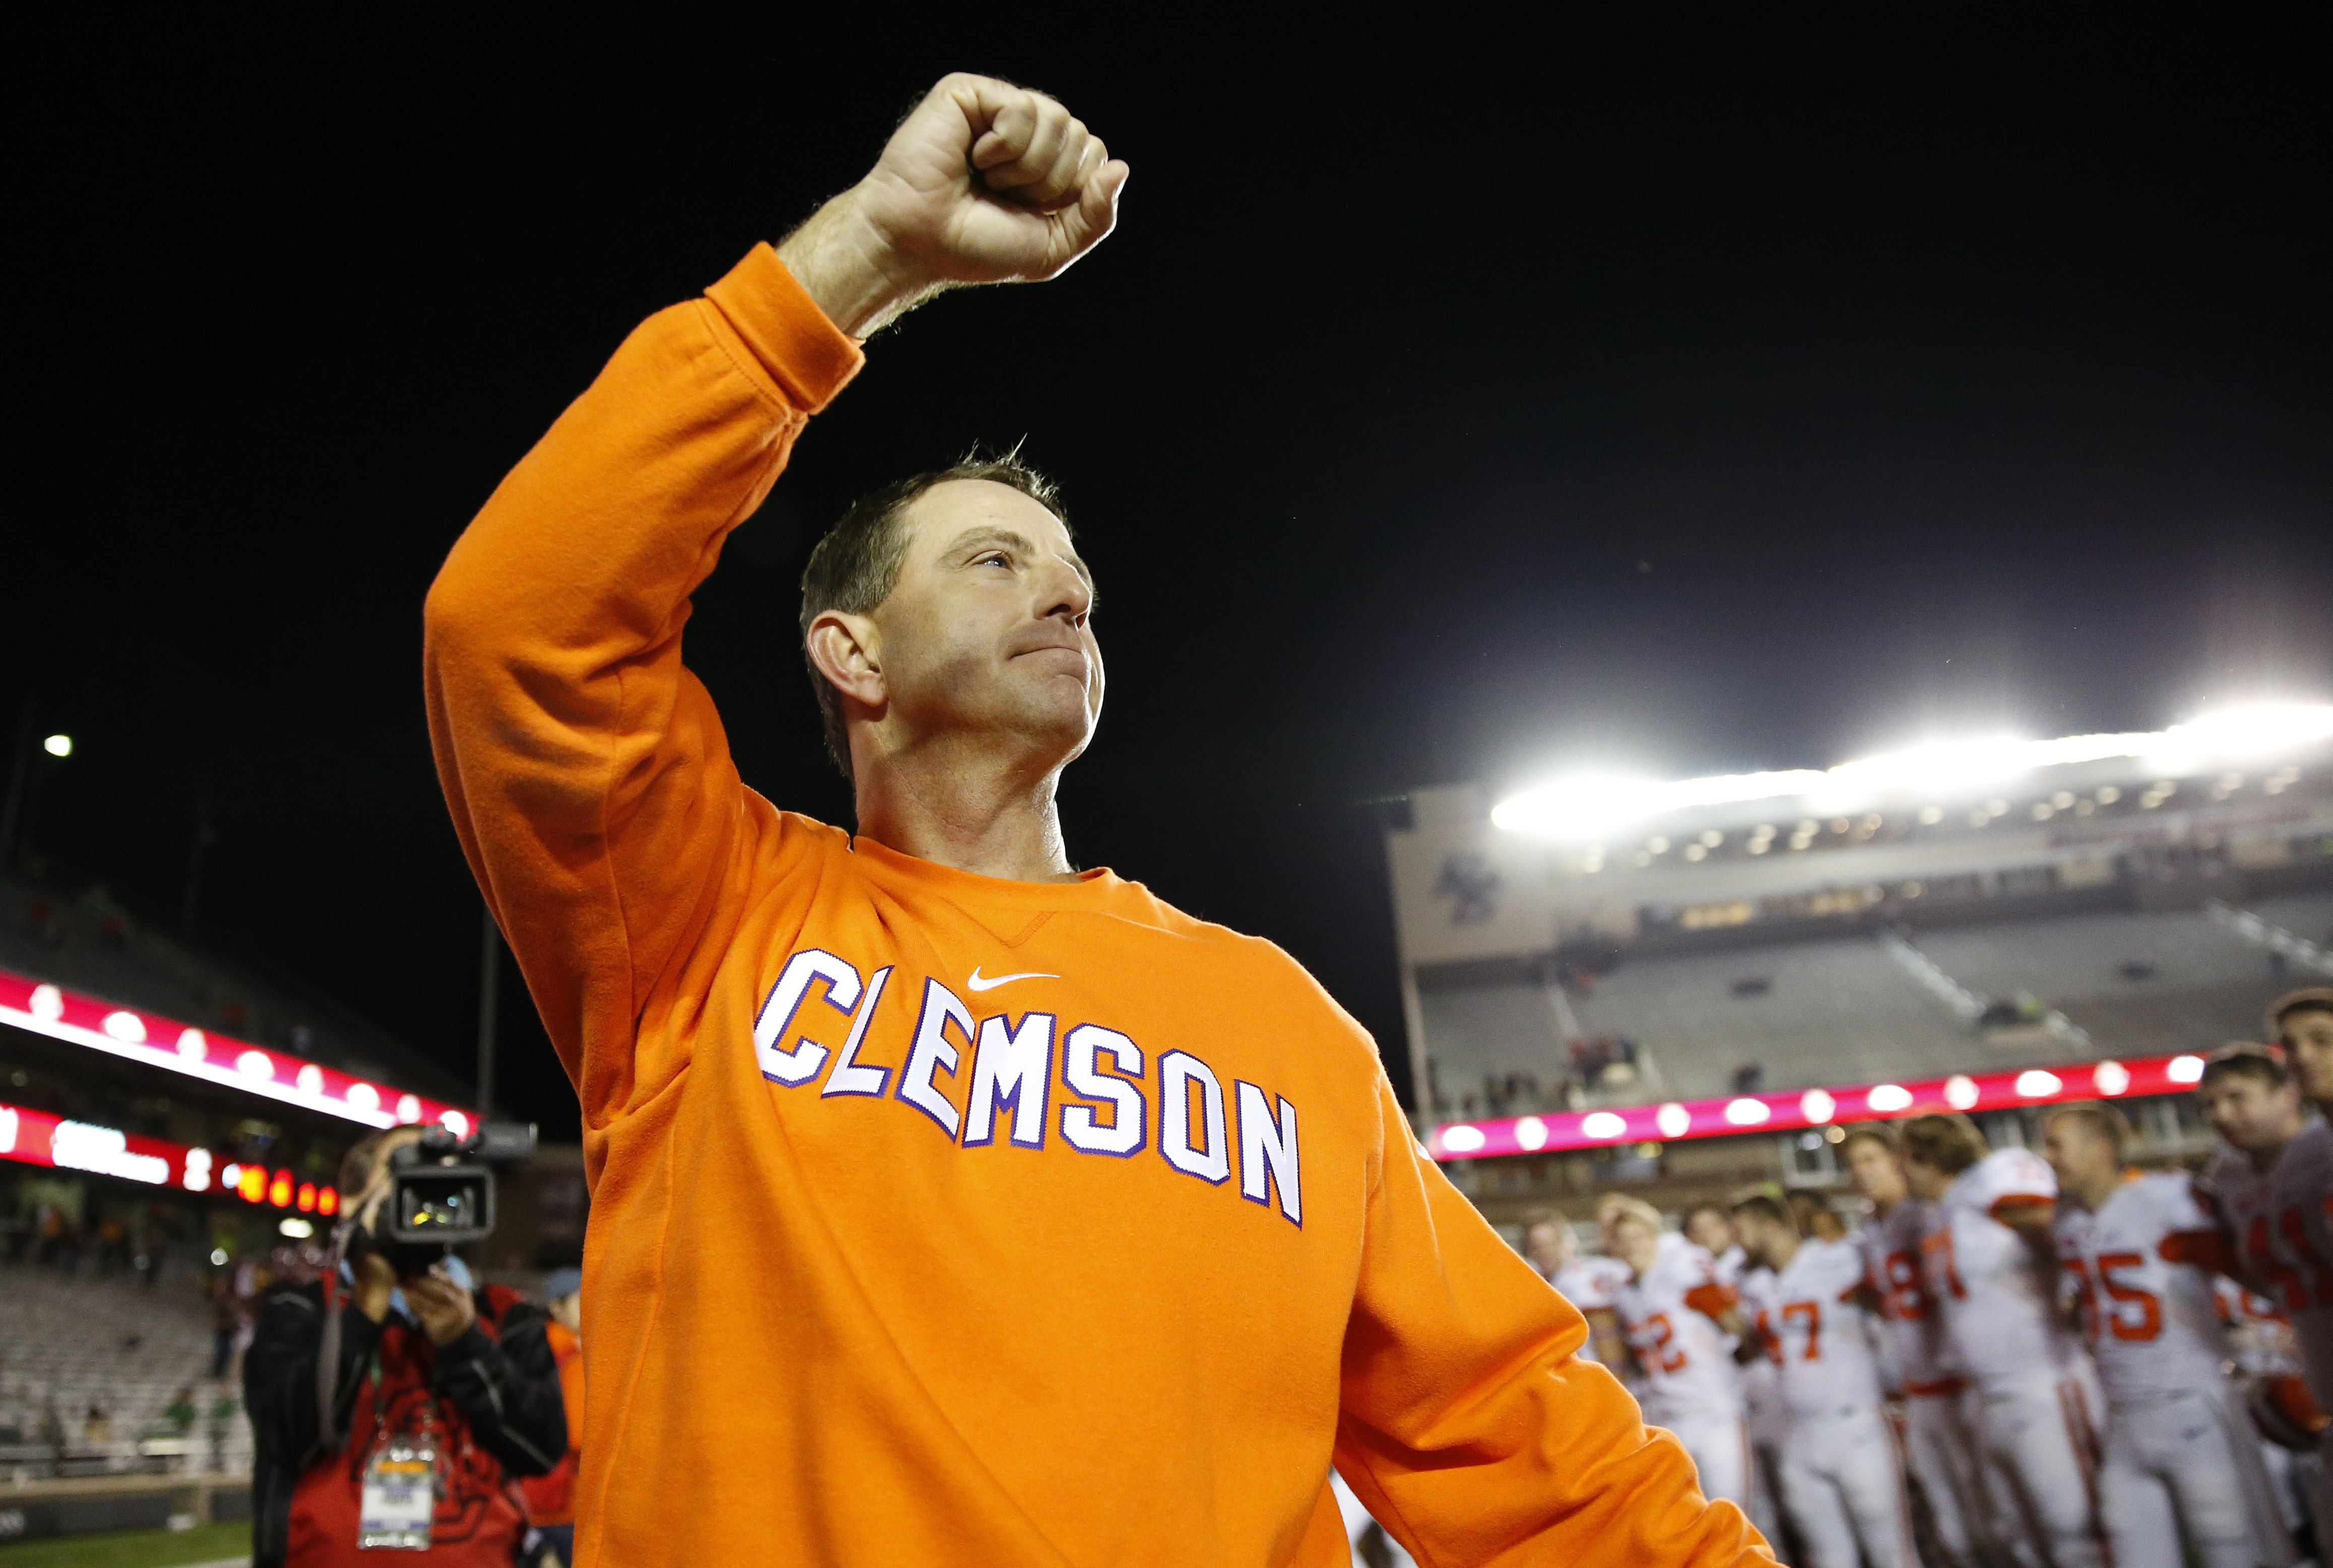 Clemson coach Dabo Swinney celebrates after his team defeated Boston College 56-10 in an NCAA football game in Boston, Friday, Oct. 7, 2016. (AP Photo/Michael Dwyer)